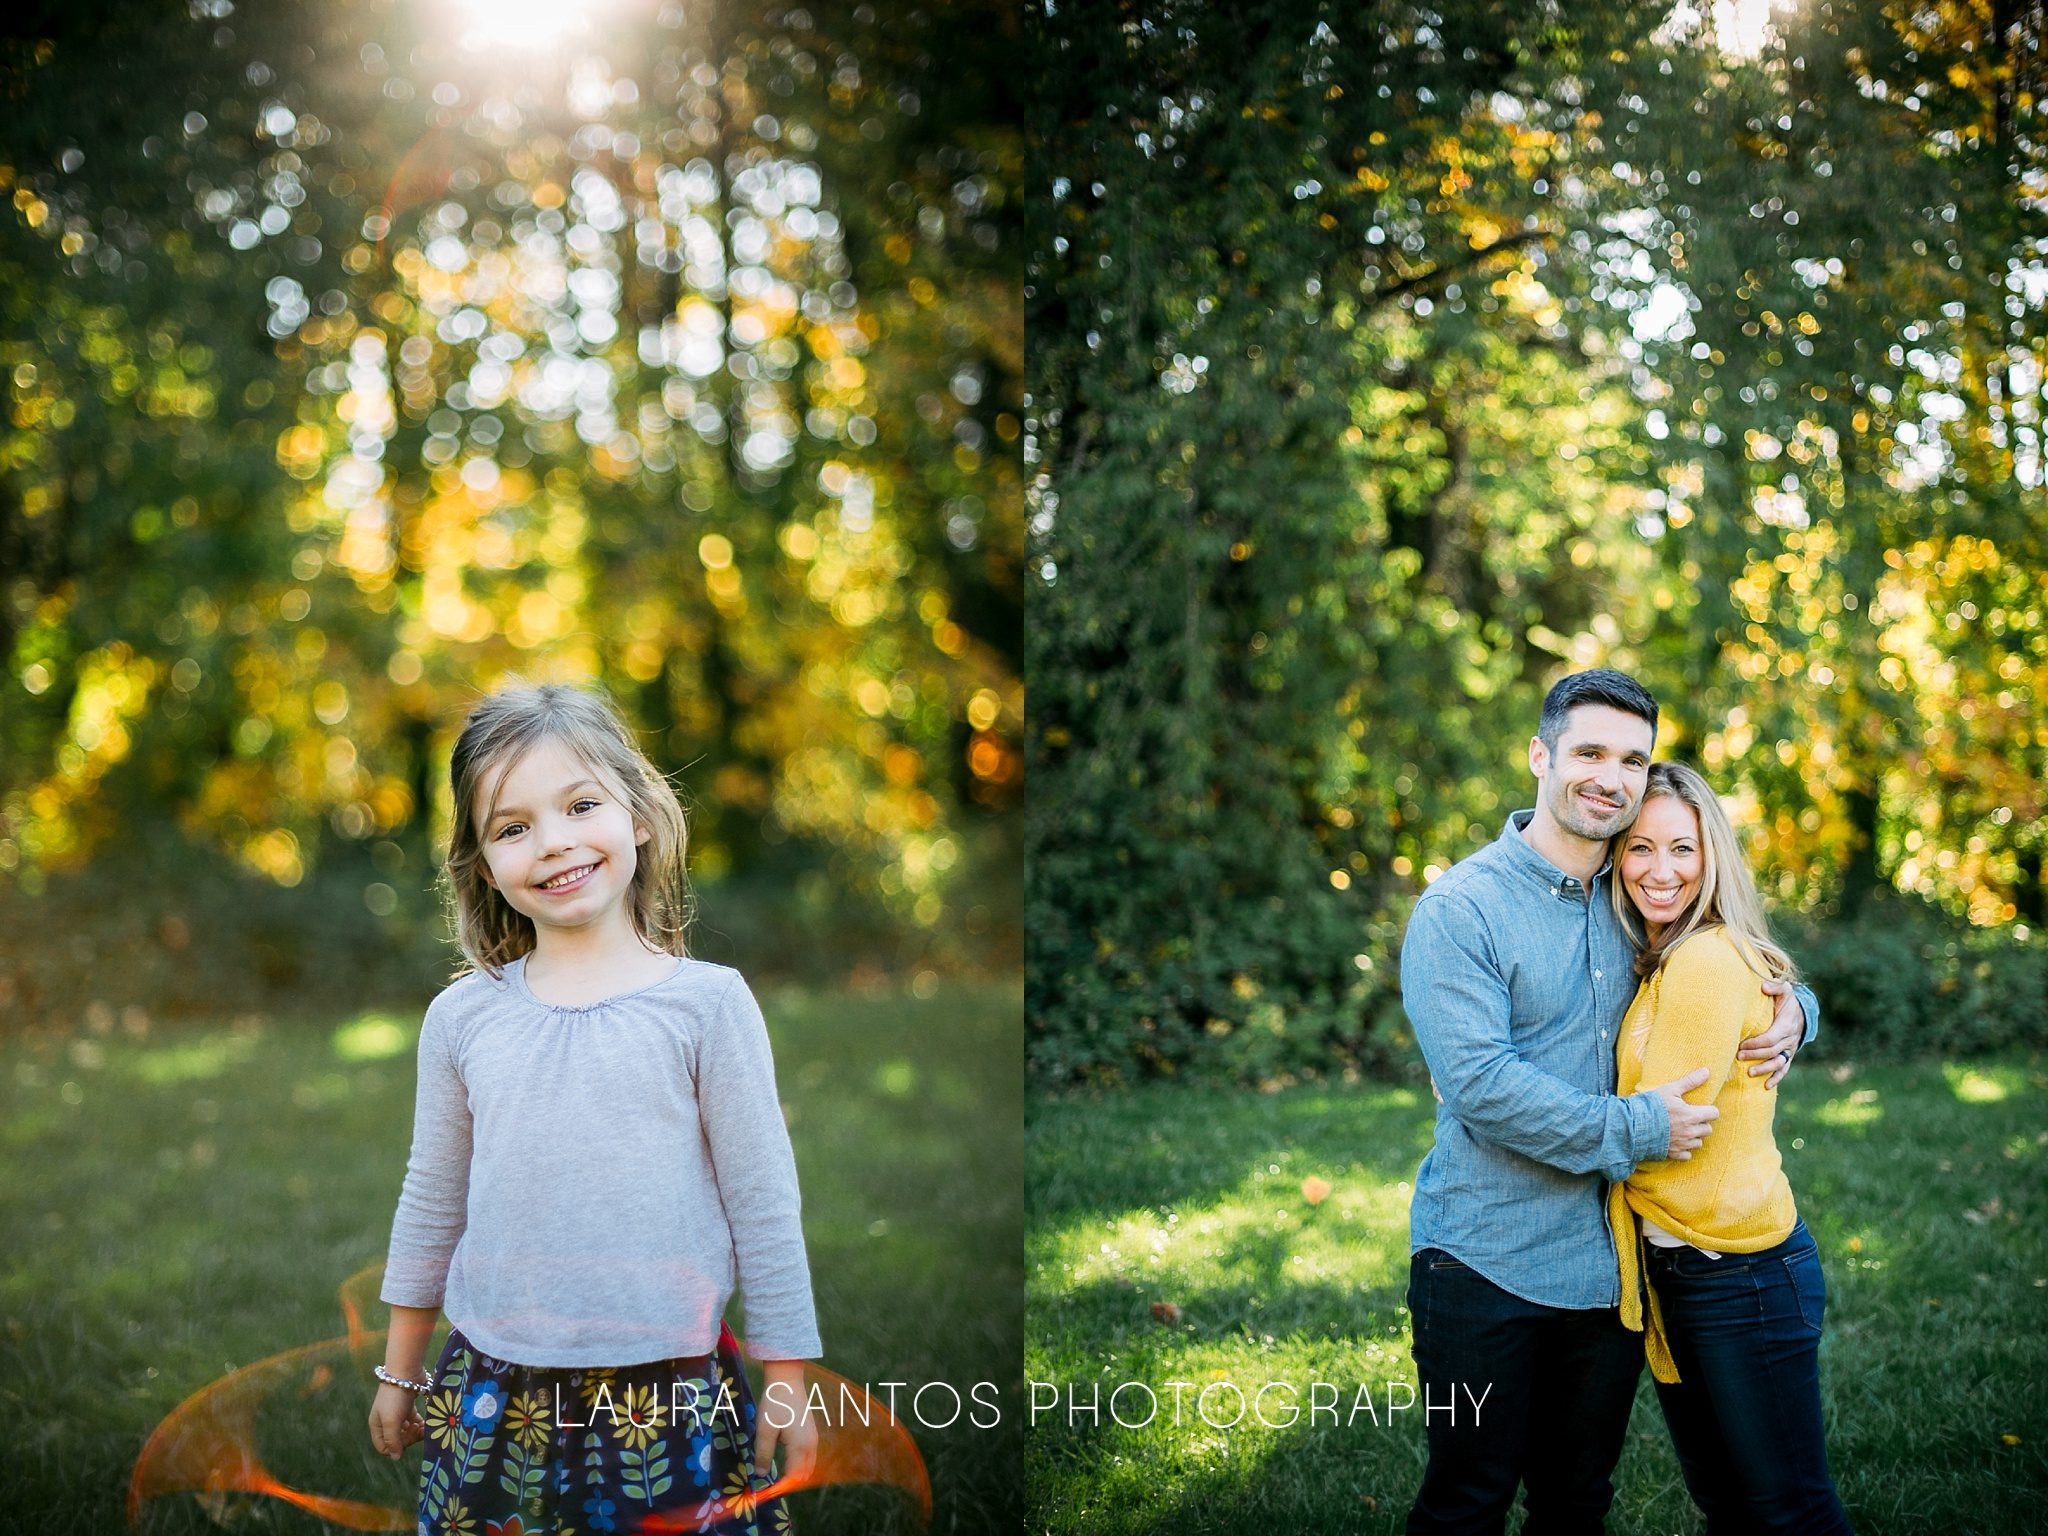 Laura Santos Photography Portland Oregon Family Photographer_0100.jpg